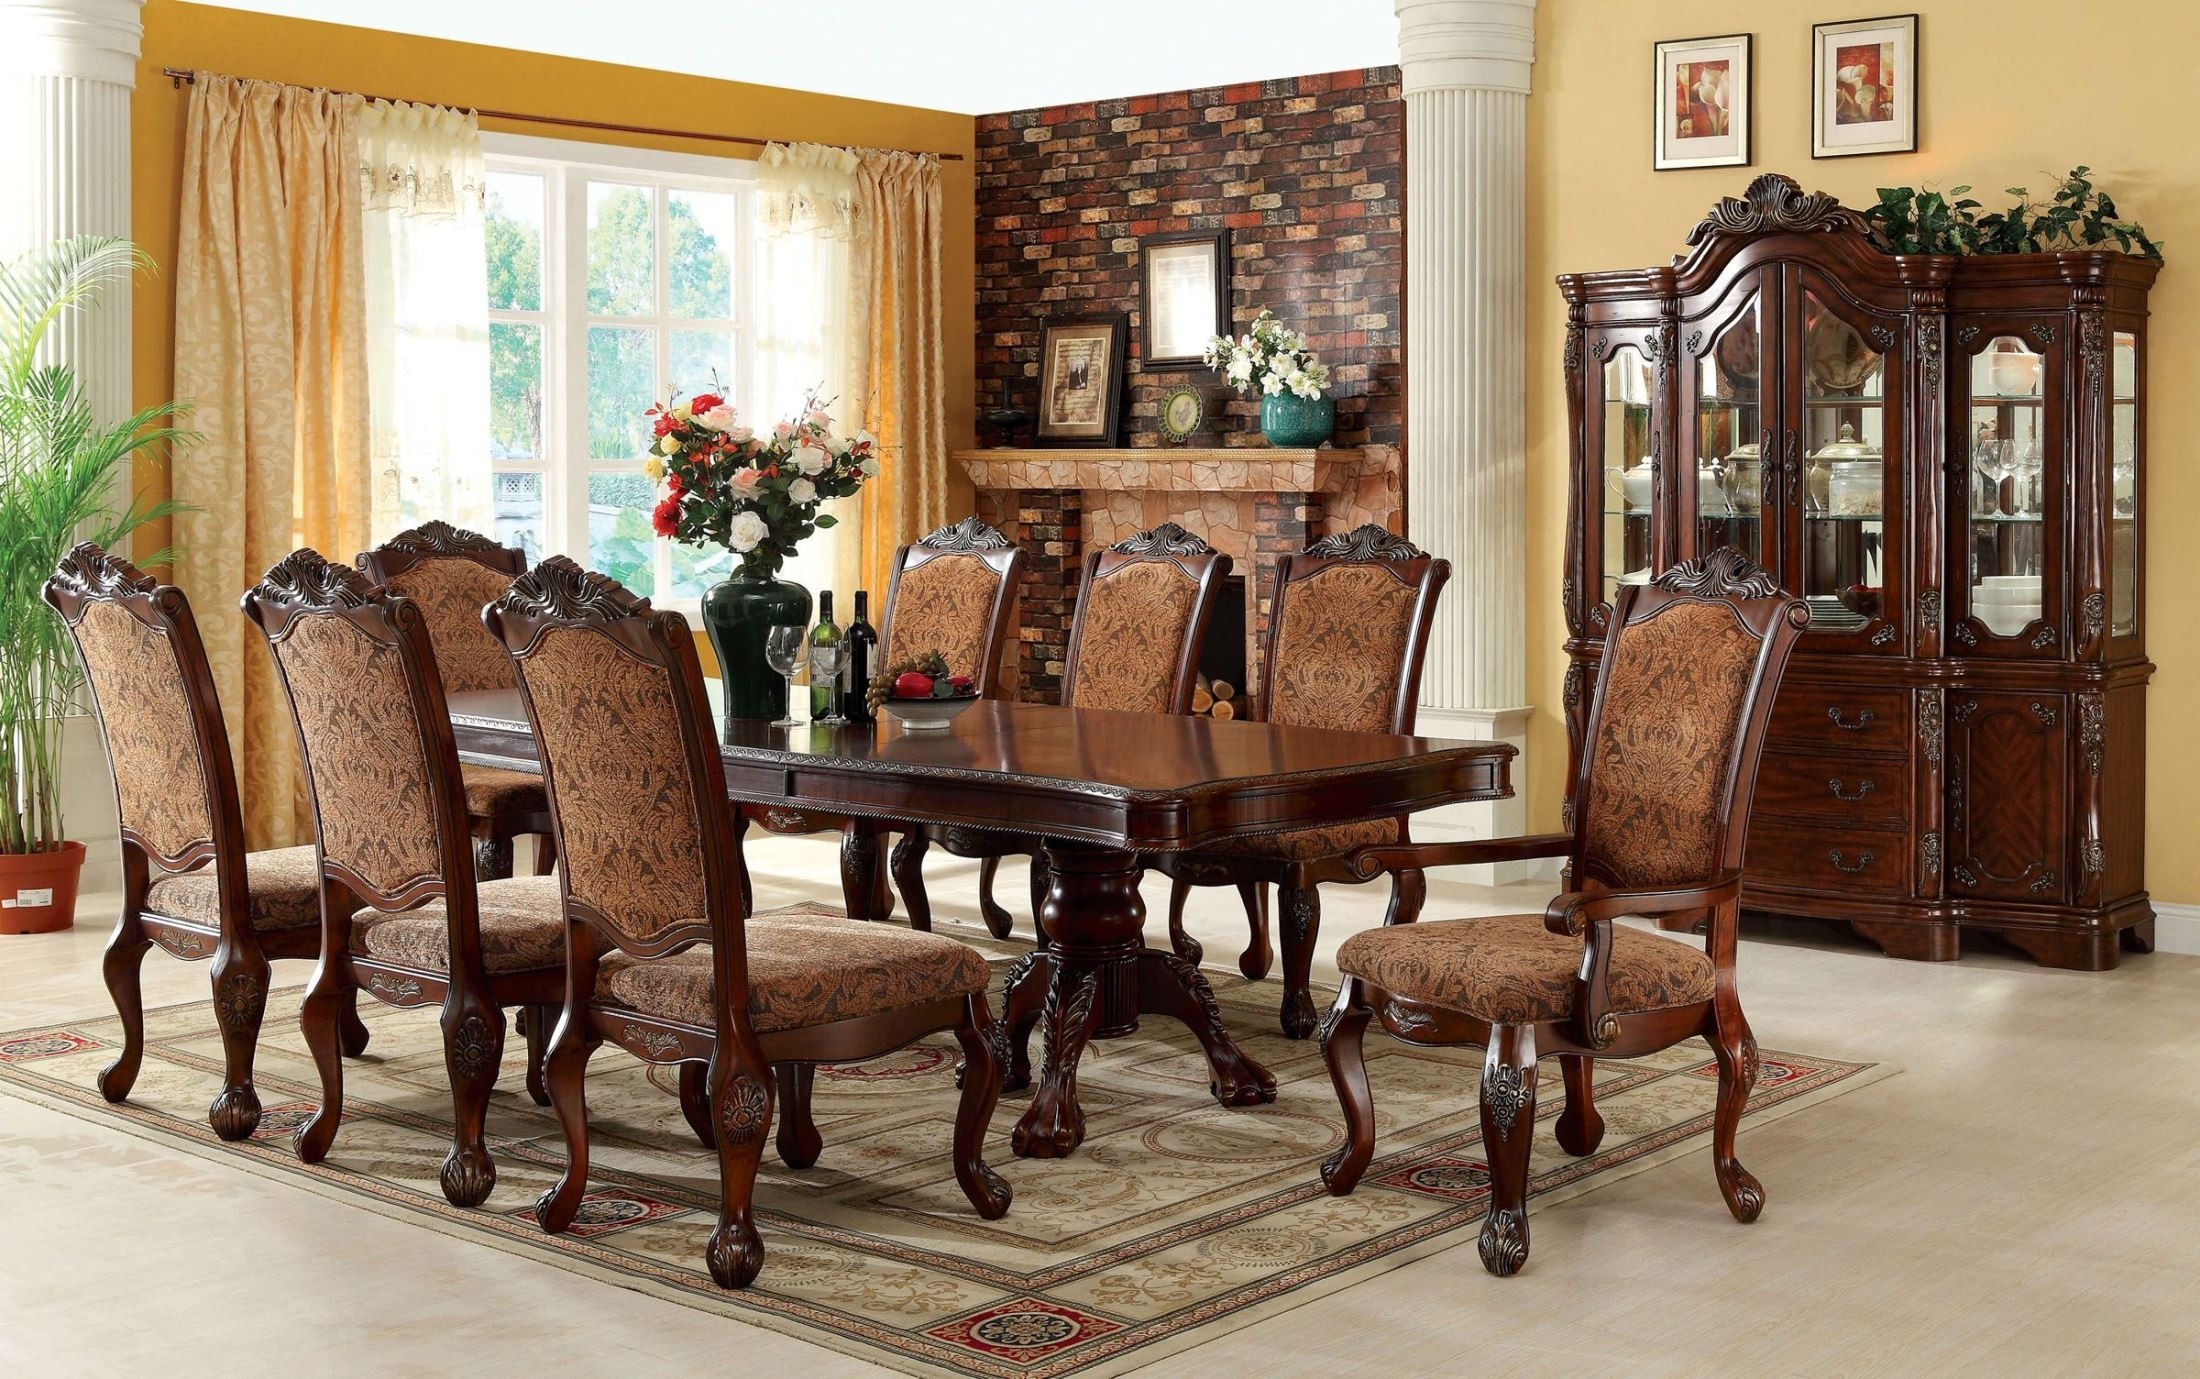 Cromwell antique cherry formal dining room set cm3103t for Formal dining chairs